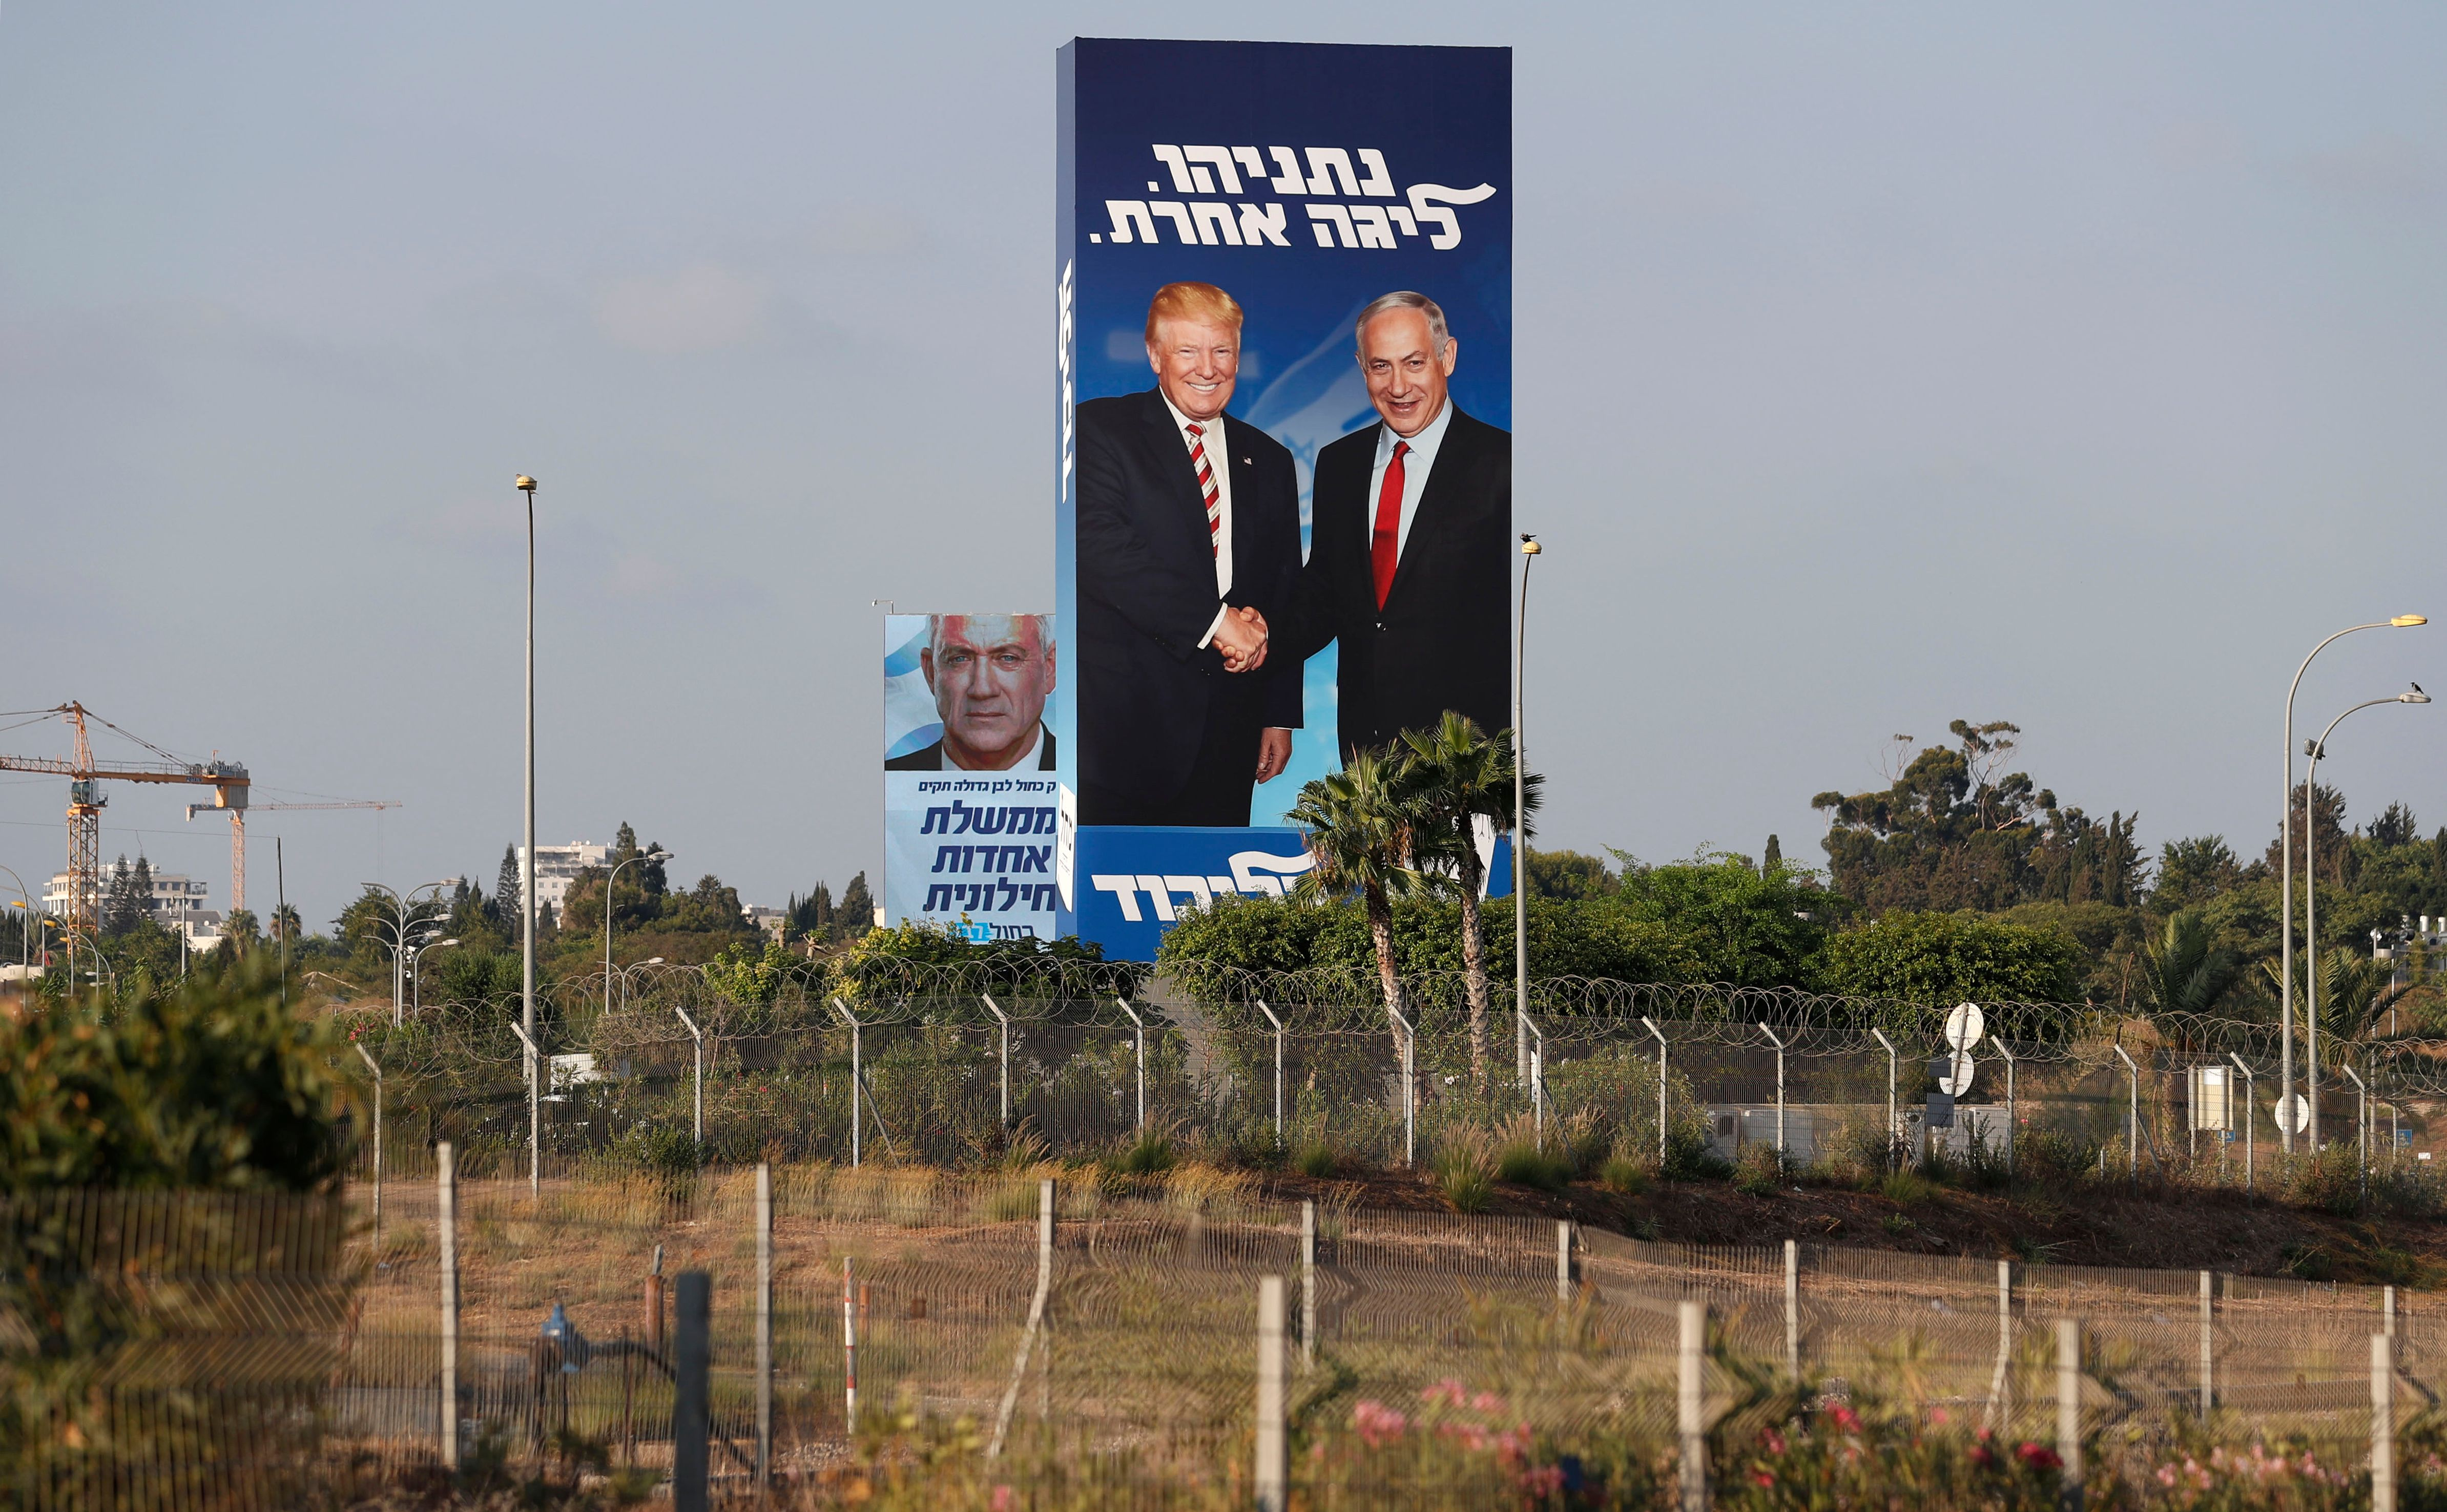 """This picture taken on September 9, 2019 shows Israeli election billboards in the Israeli coastal city of Tel Aviv (R to L) for the Likud party showing US President Donald Trump shaking hands with Likud chairman and Prime Minister Benjamin Netanyahu with a caption in Hebrew reading """"Netanyahu, in another league""""; and another for the """"Blue and White"""" (Kahol Lavan) electoral alliance showing the face of retired general Benny Gantz and a caption in Hebrew reading """"only with the Blue and White will create a united secular government""""."""